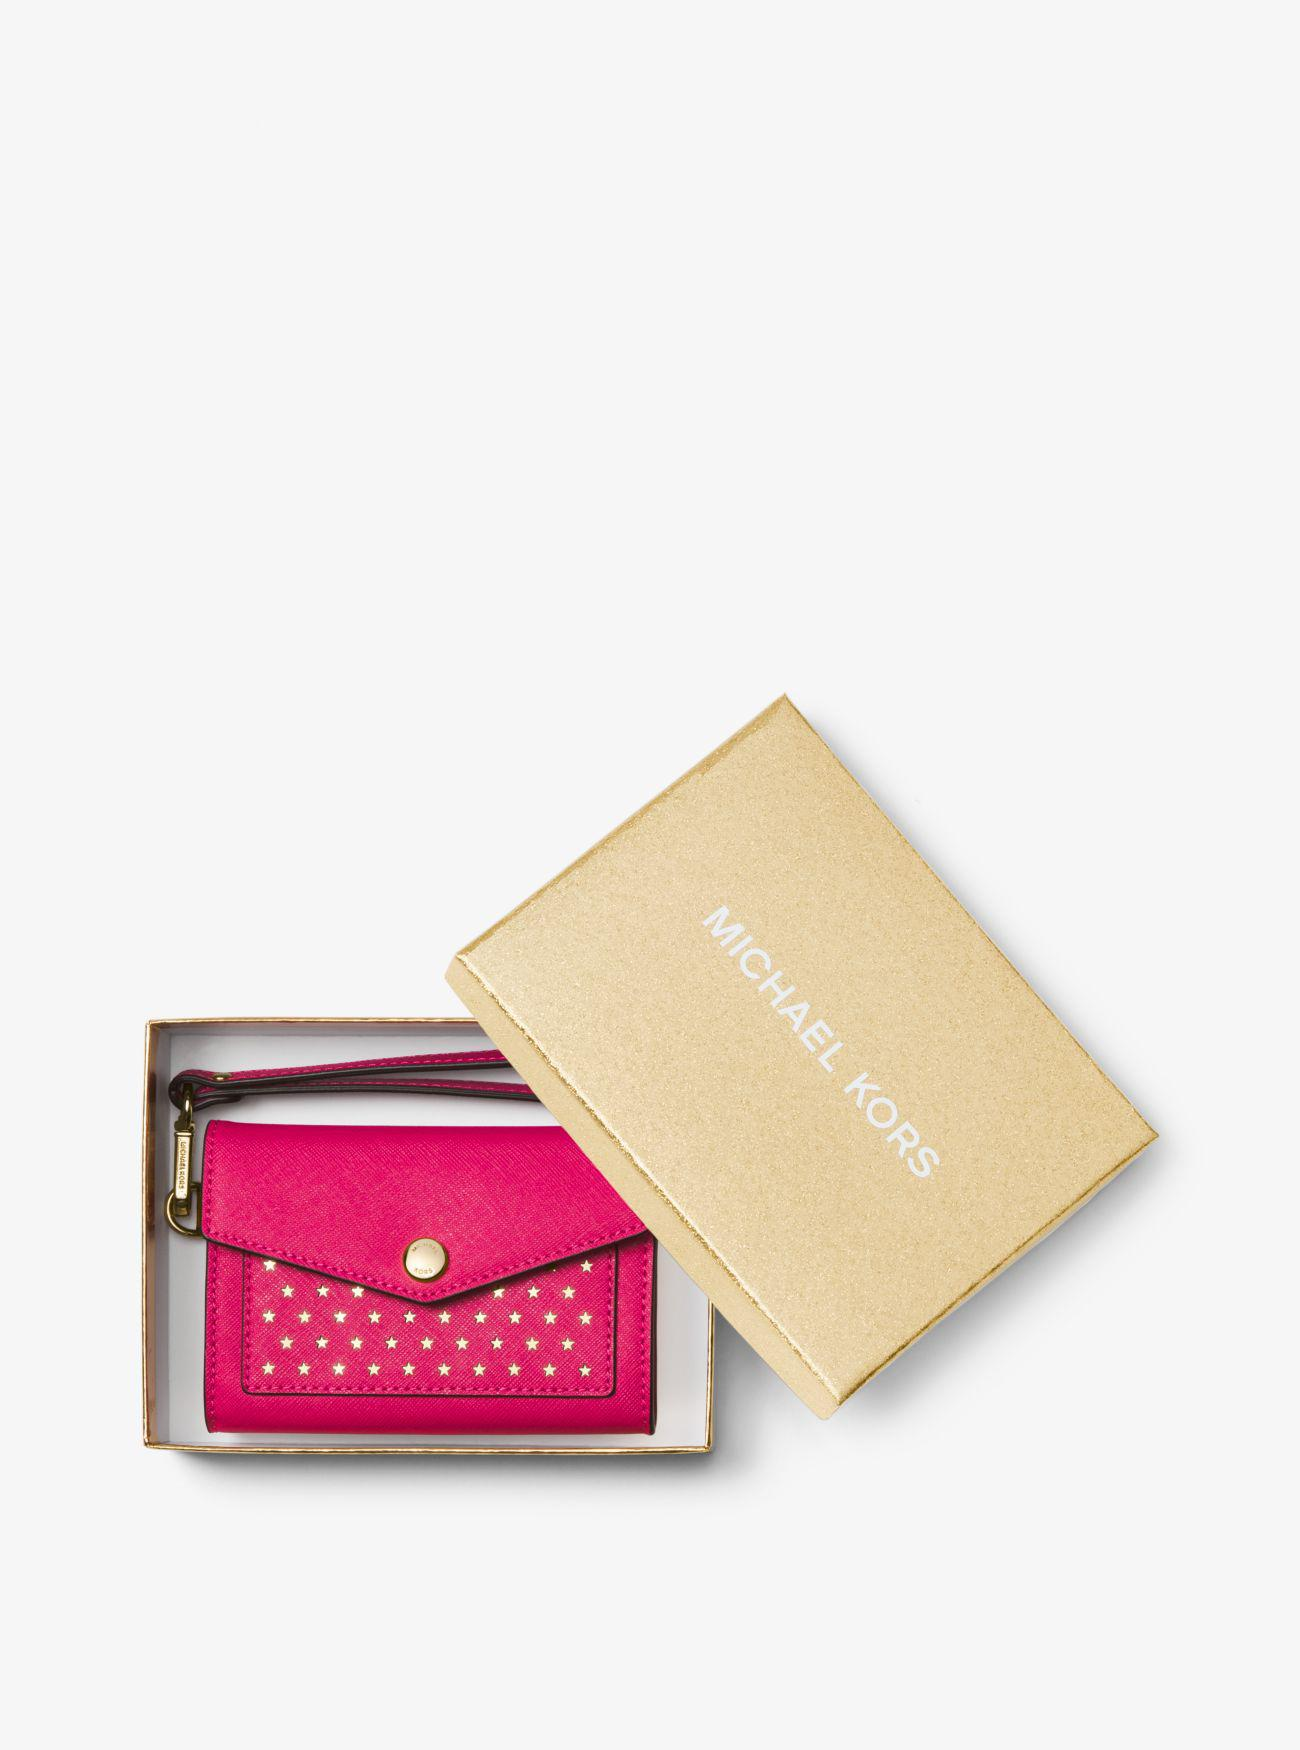 8891553a7bc1 Lyst - Michael Kors Perforated Saffiano Leather Wristlet in Pink